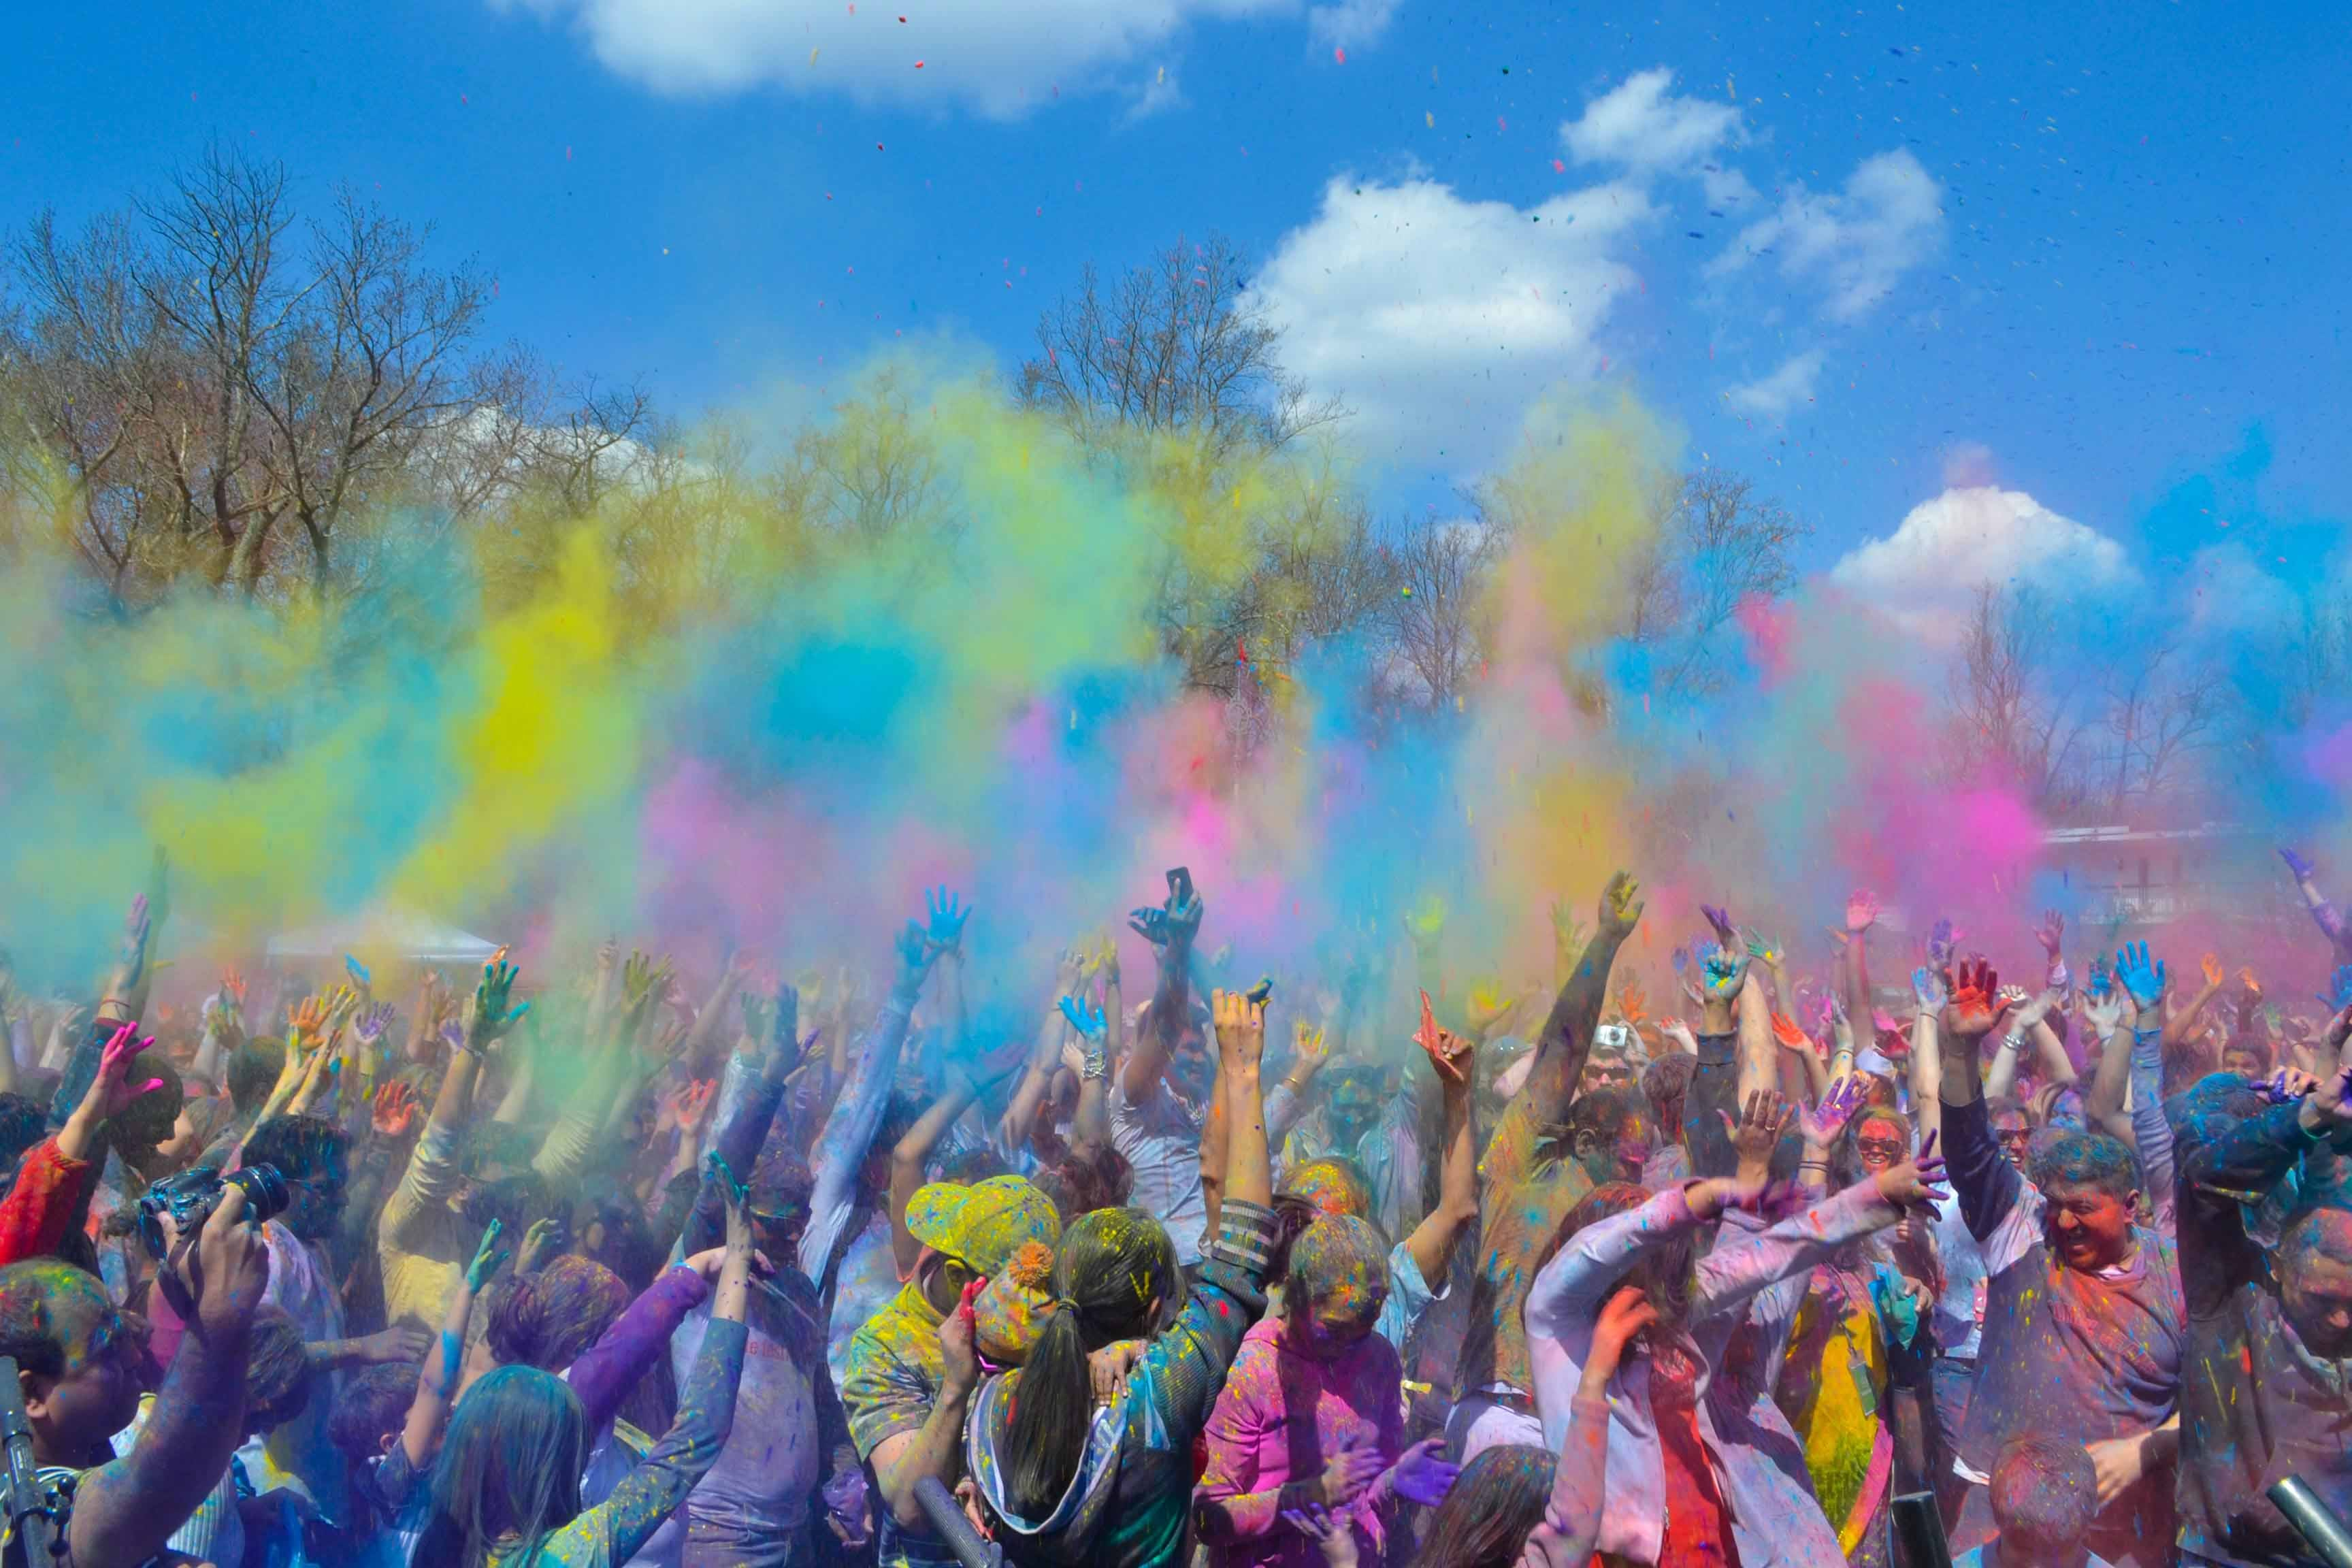 Download Free Hd Wallpapers Of Holi